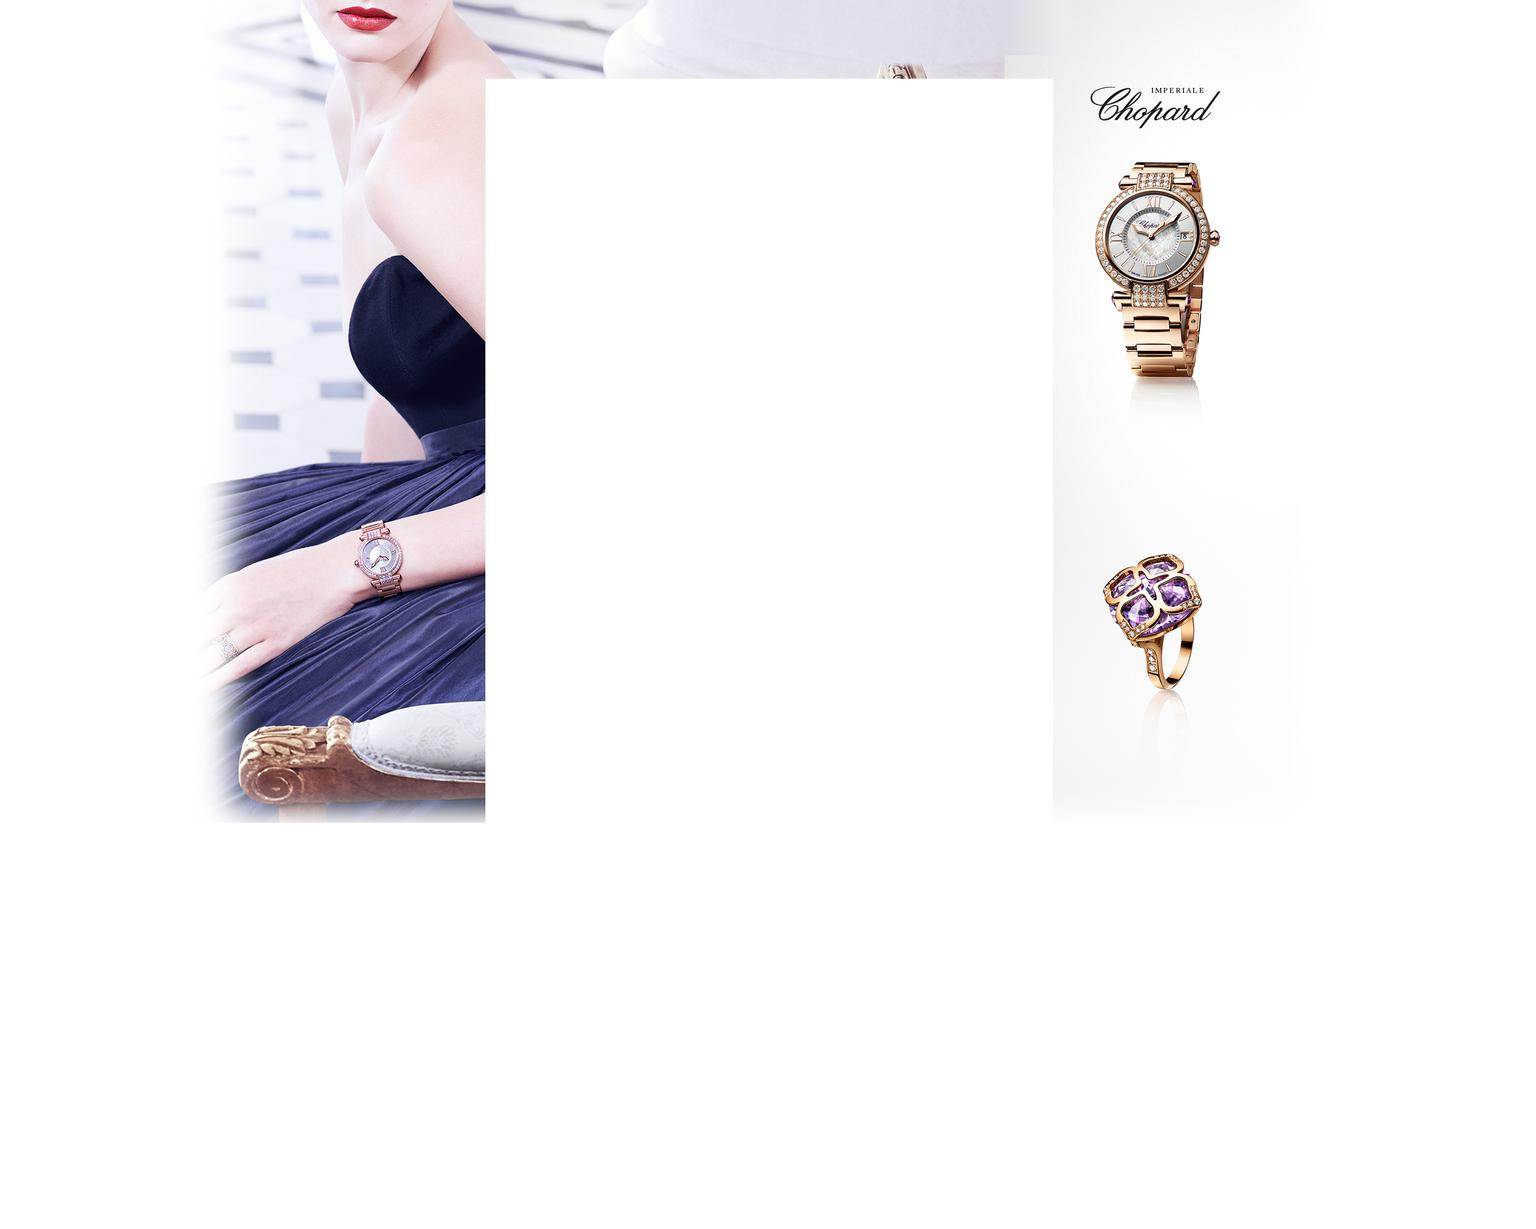 Chopard - Side Banner - Oct 2014